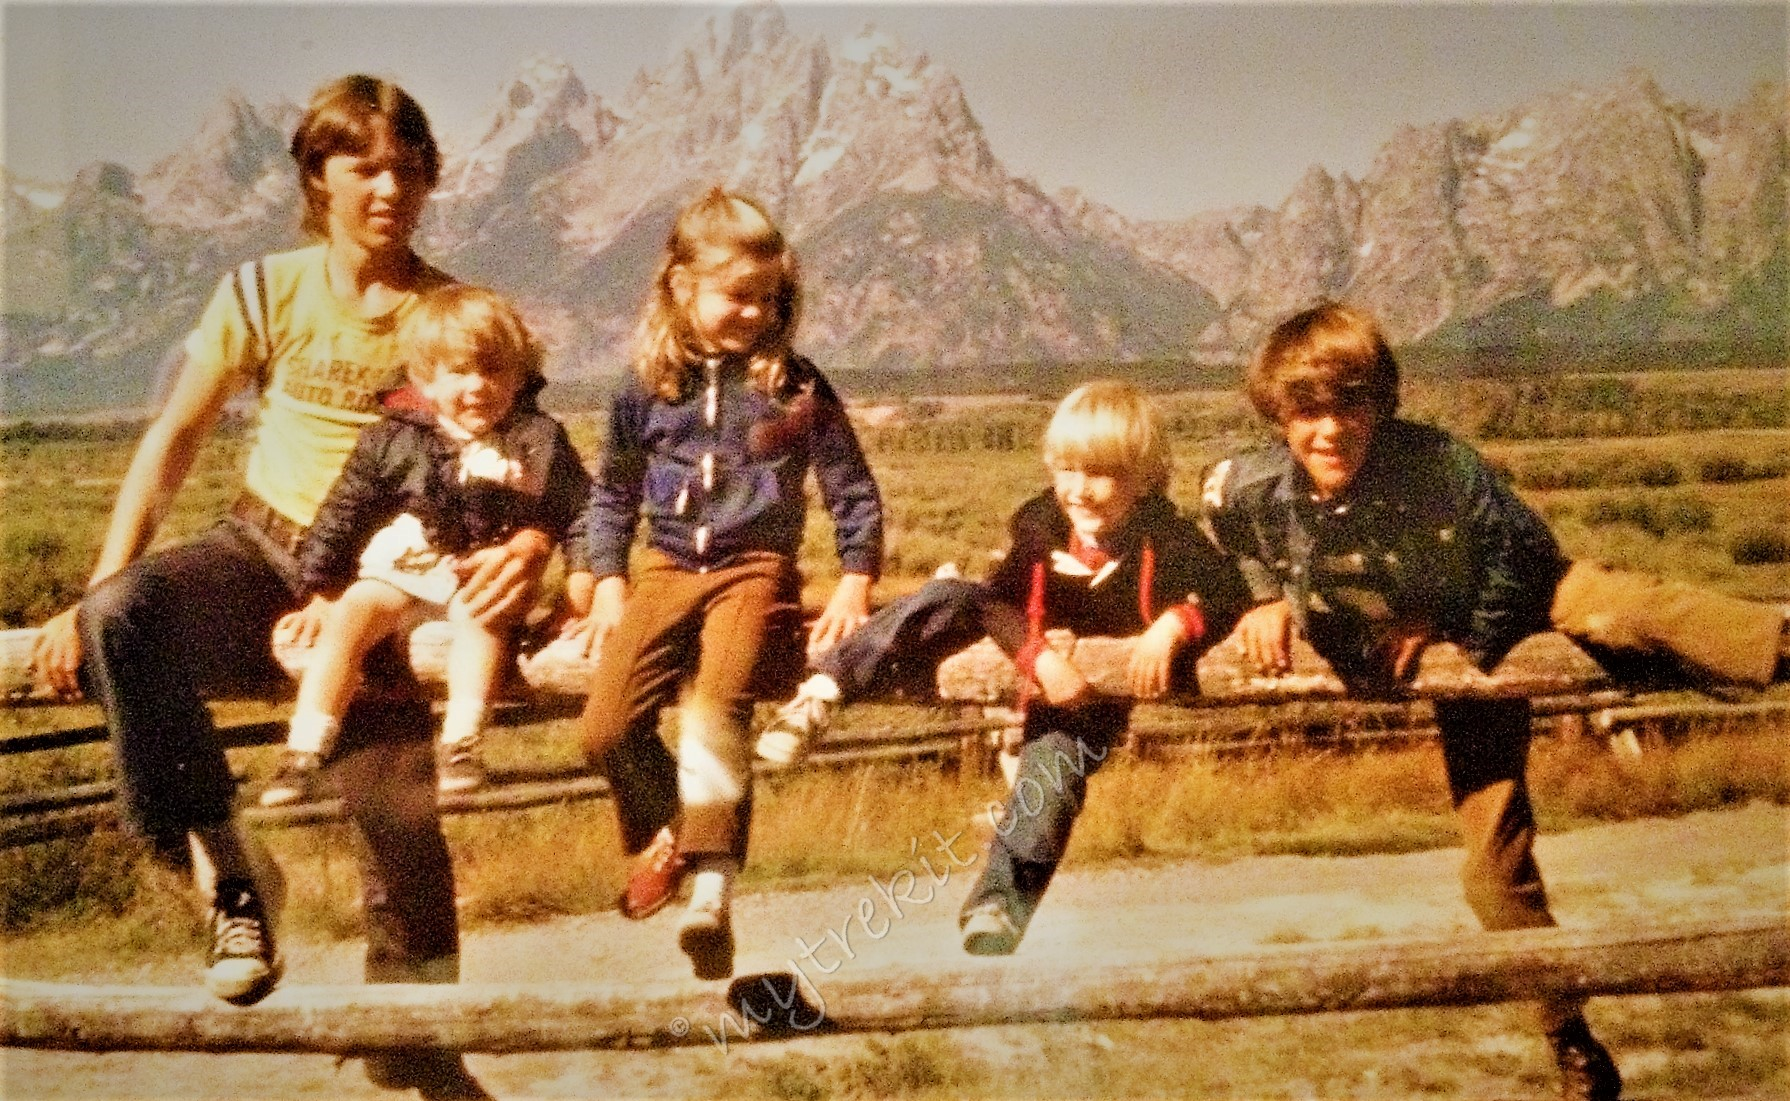 Me and the bros: - Our family's own iconic photo, Grand Tetons, Wyoming